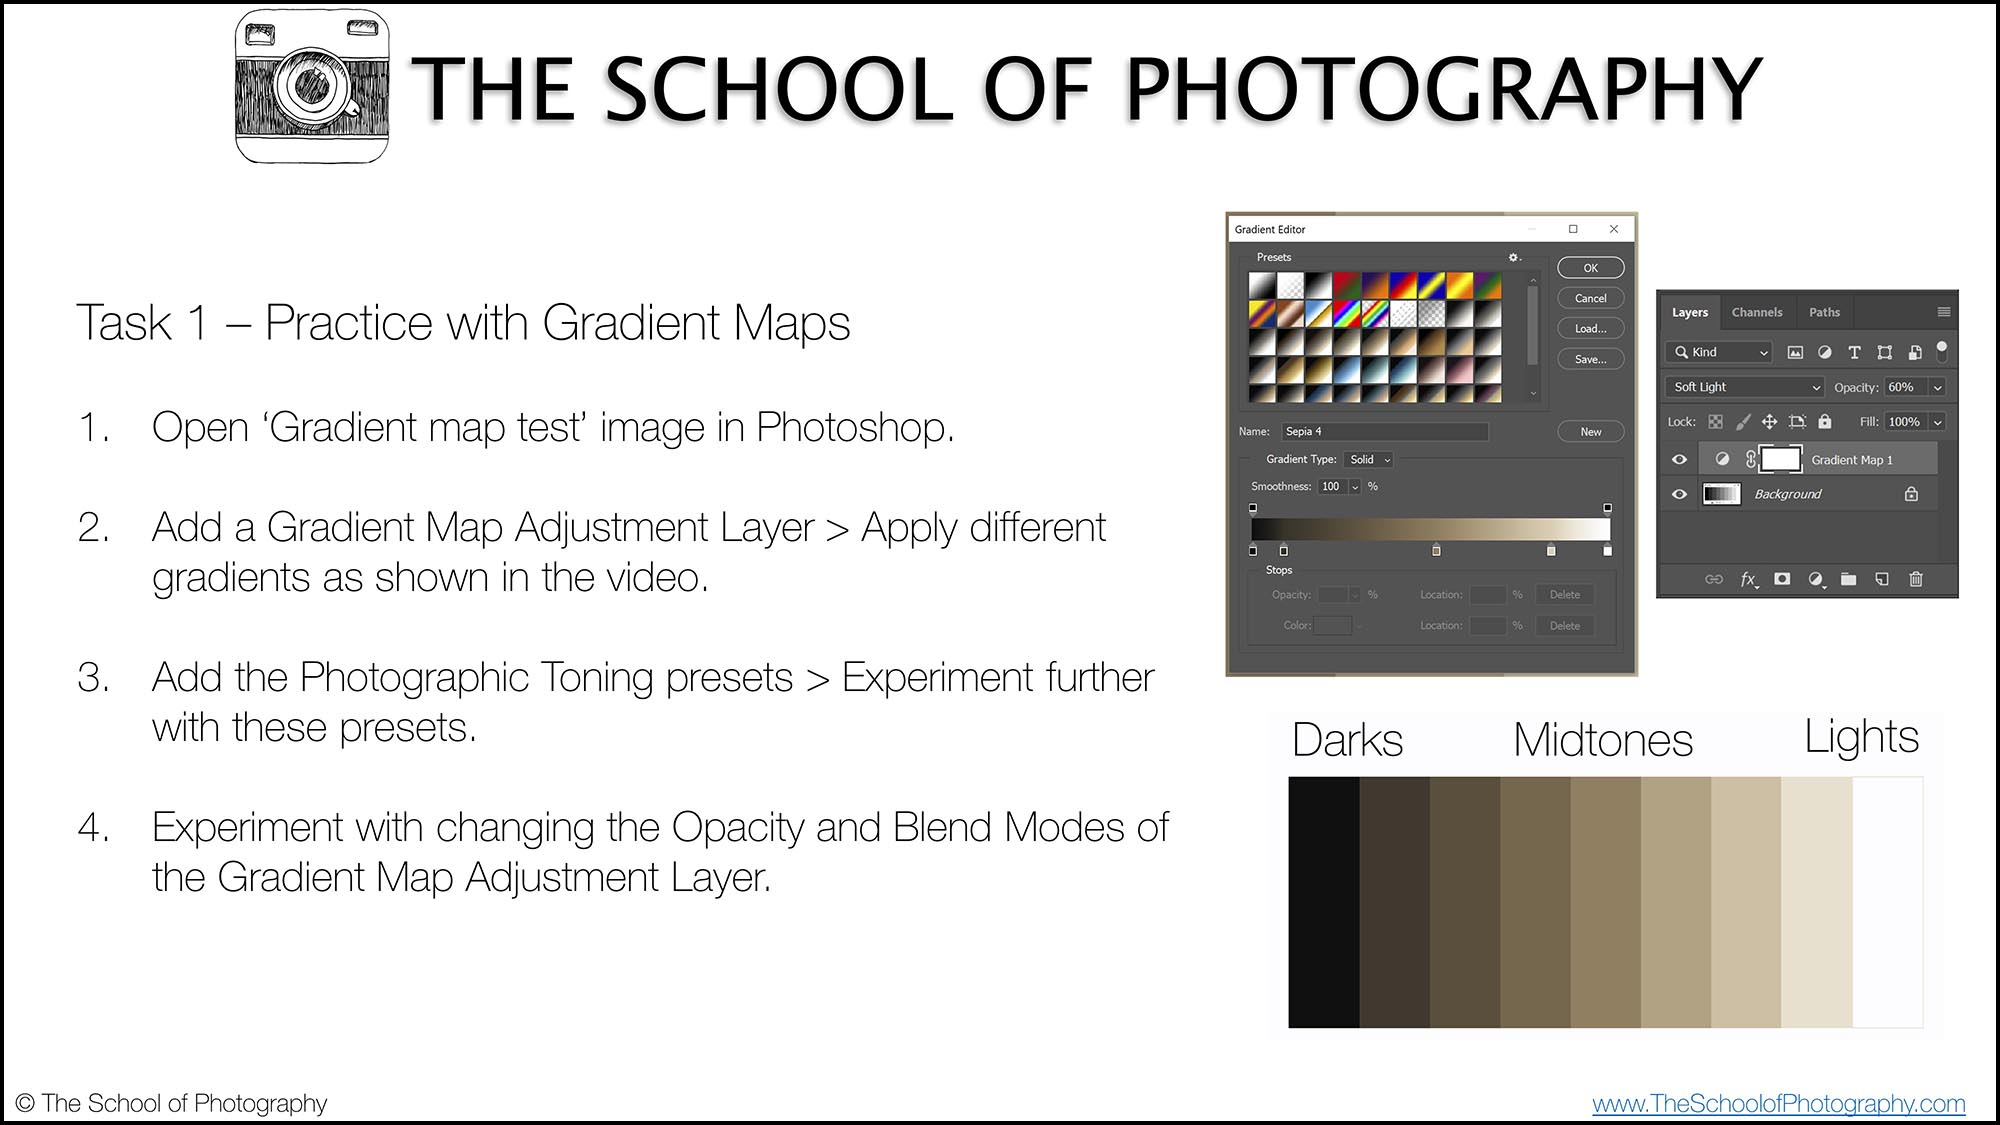 An Easy Guide for Beginners - This online course is aimed at complete beginners but will also suit intermediate Photoshop users who have some experience post-processing but haven't been able to grasp how to use this complex program to get the most out of their images.